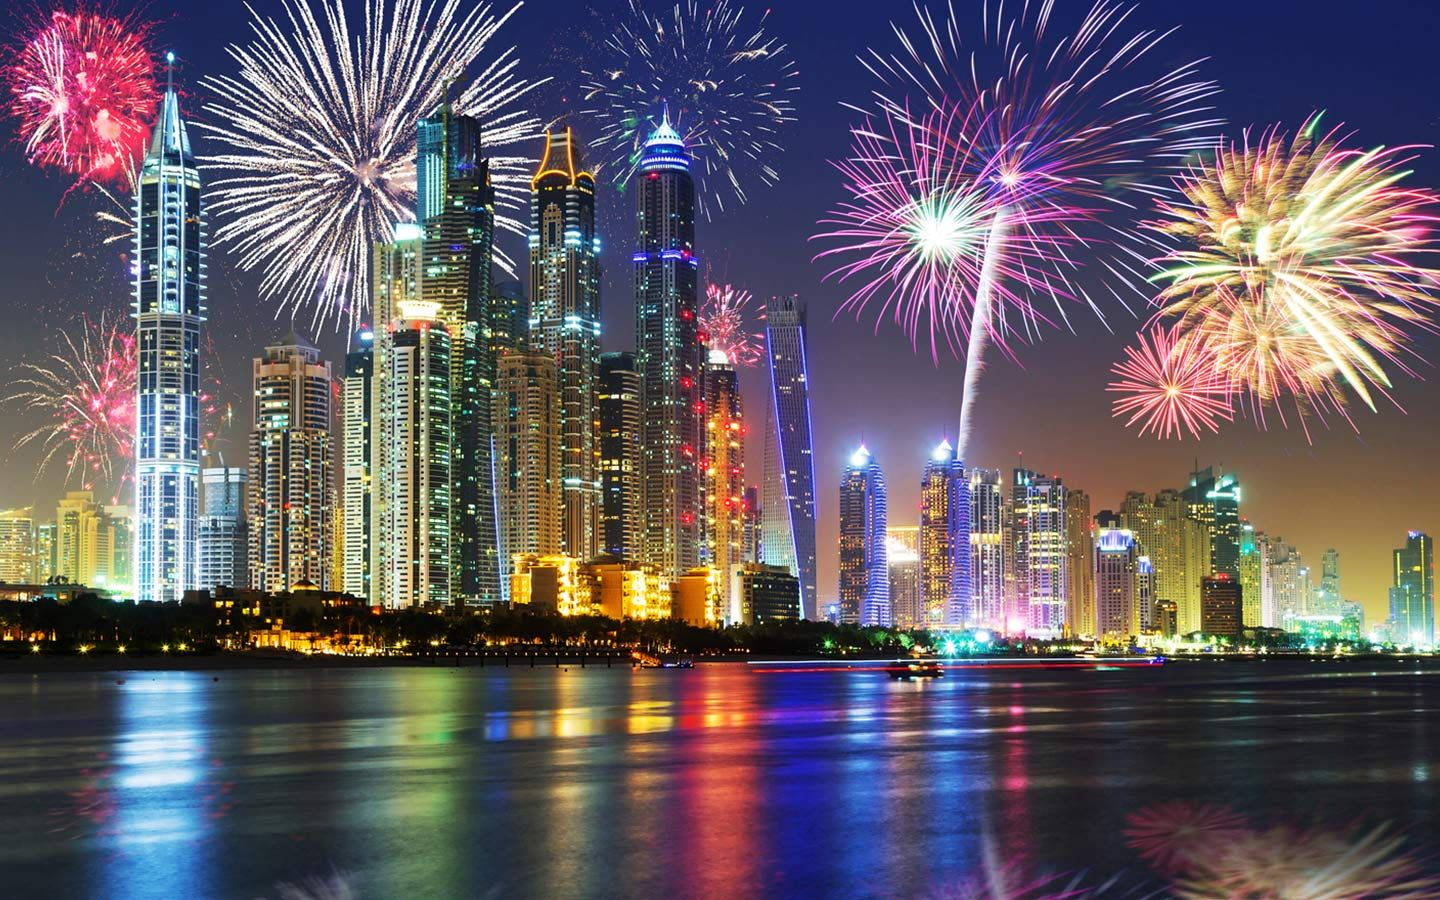 New Year In Dubai 2020 All Things To Know Fireworks Photography Dubai City Dubai Holidays